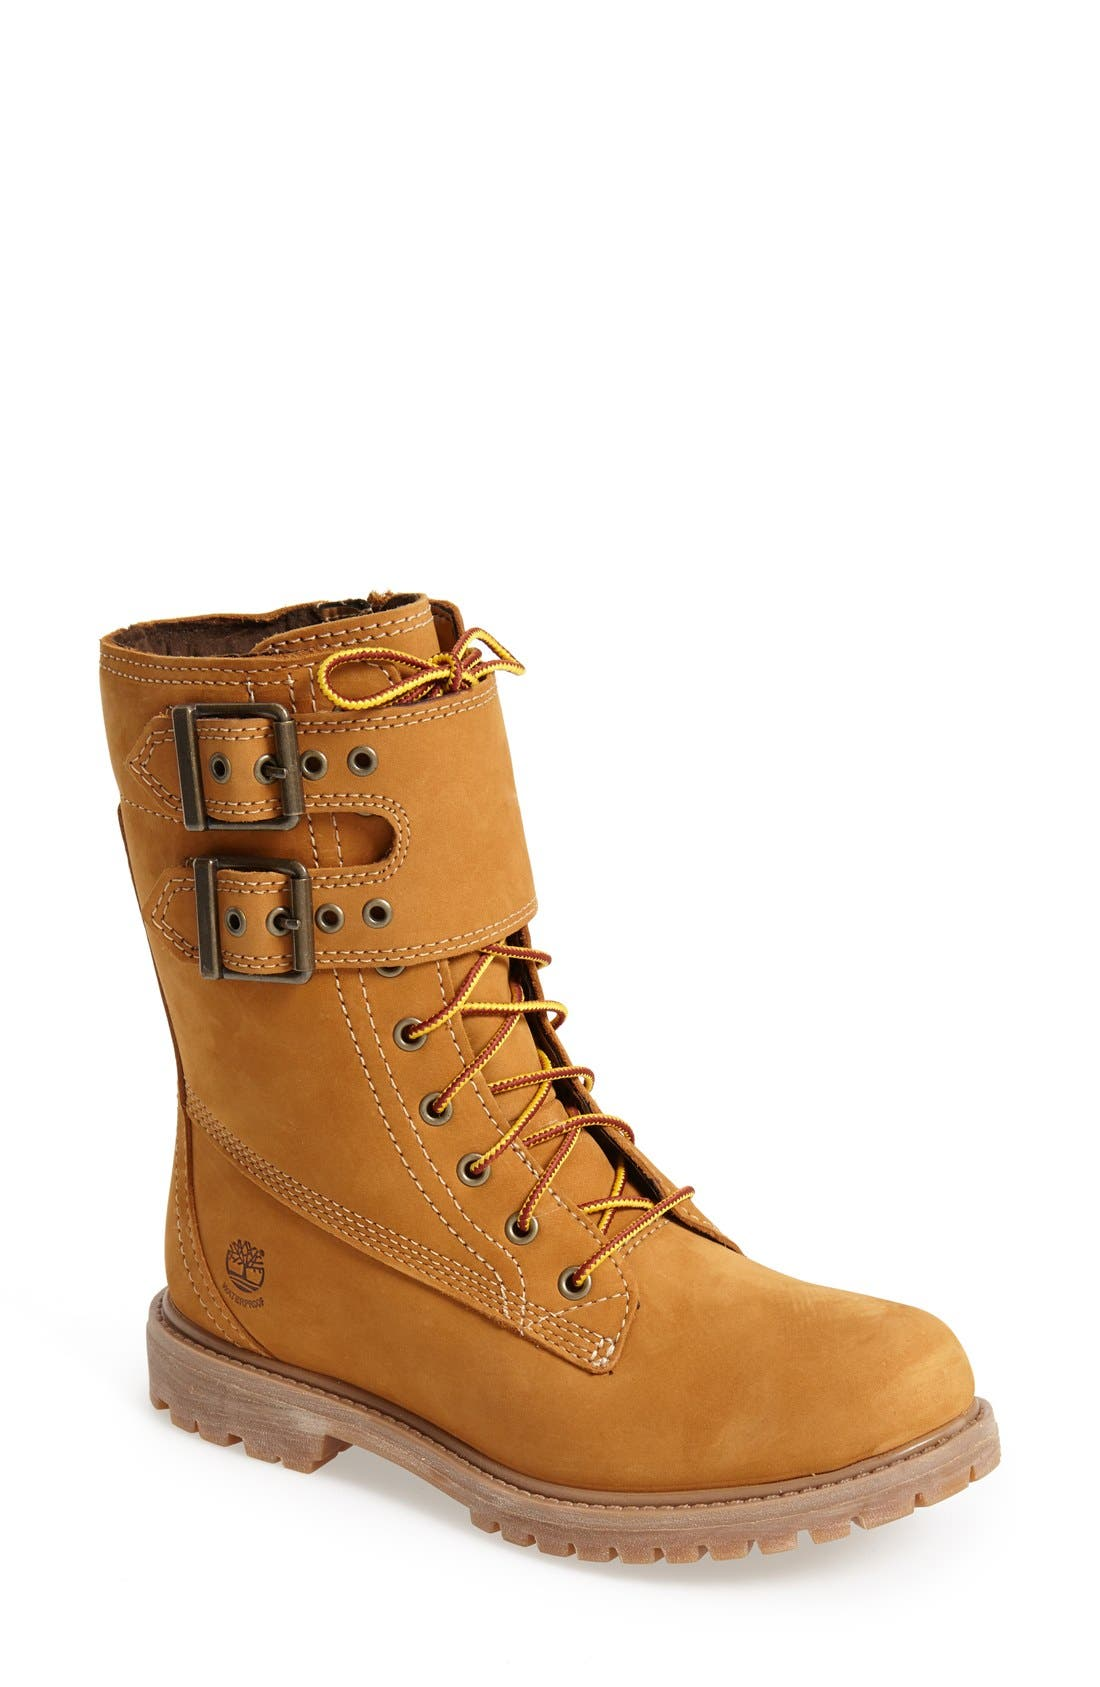 Alternate Image 1 Selected - Timberland Earthkeepers® Waterproof Double Strap Boot (Women)